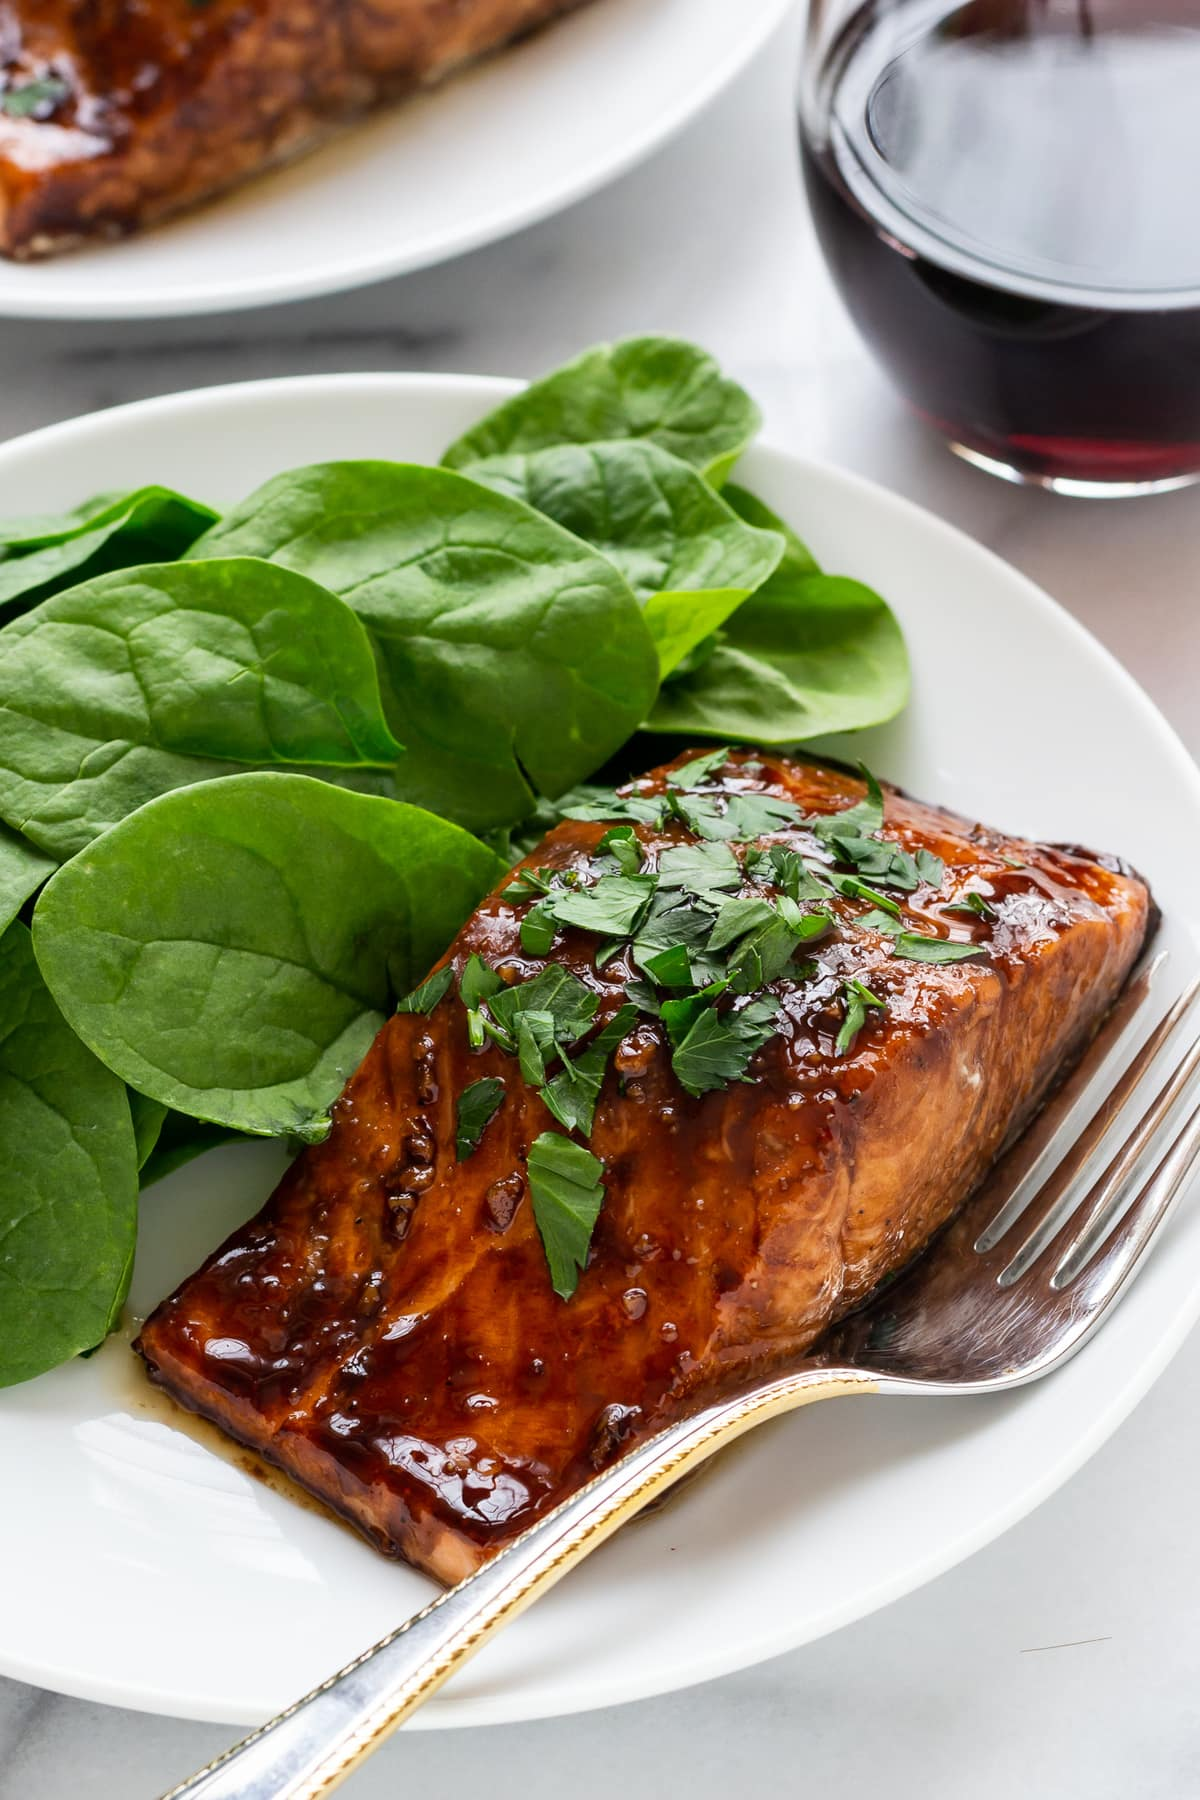 dinner serving of Balsamic Glazed Salmon, spinach, and a glass of red wine